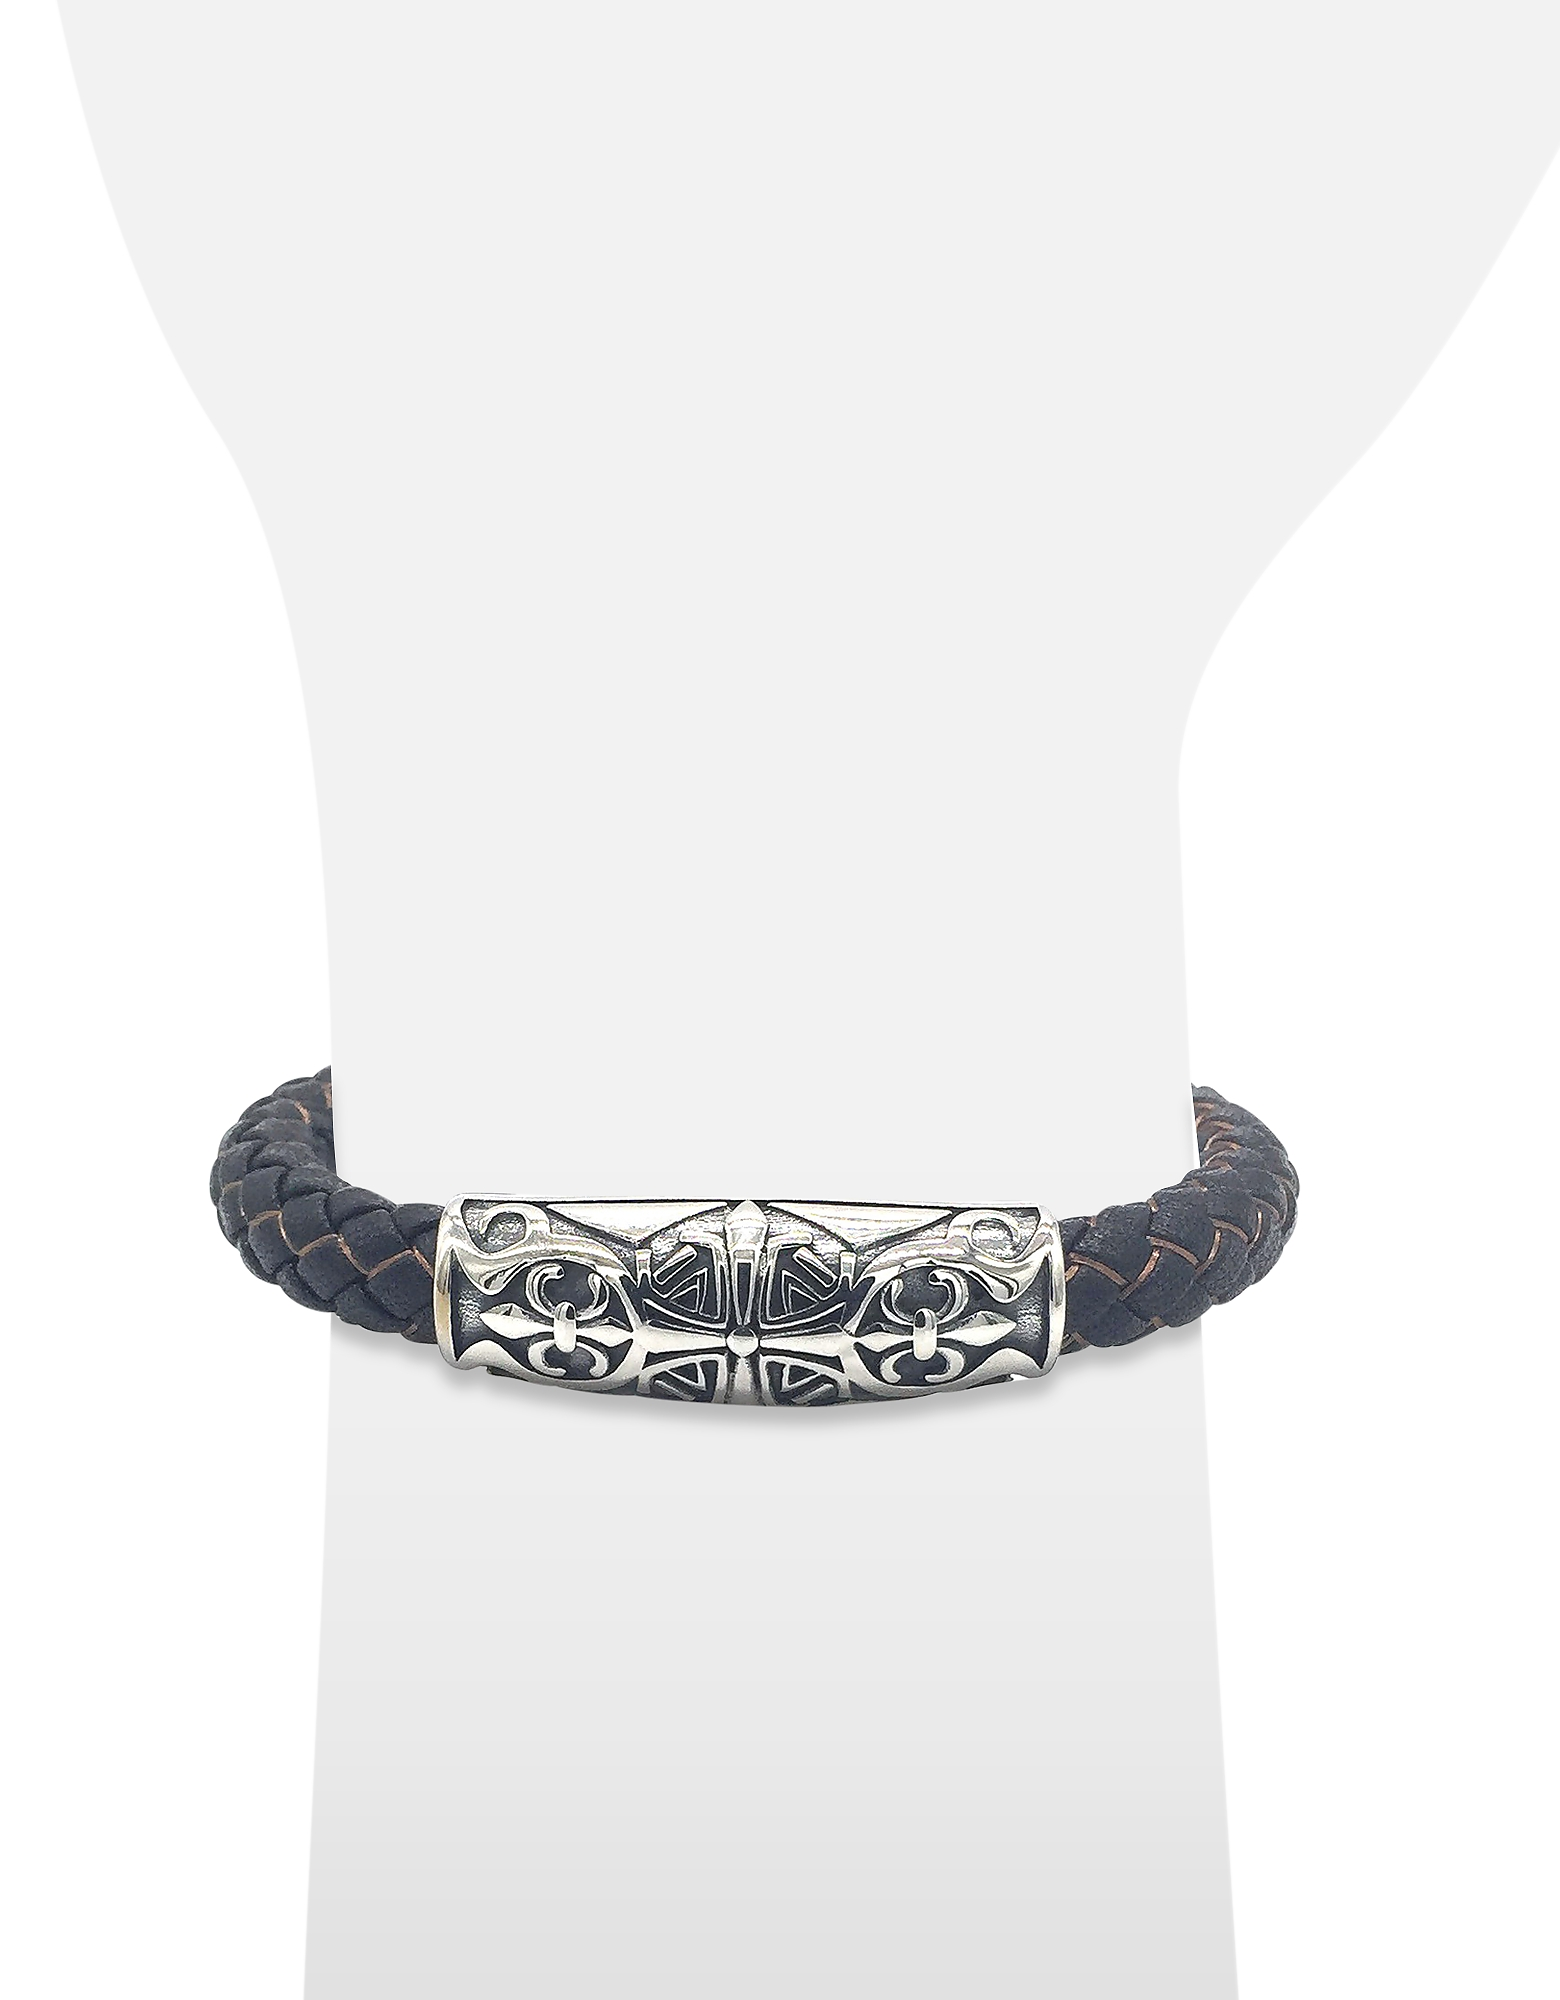 Engraved Stainless Steel and Braided Leather Men's Bracelet от Forzieri.com INT